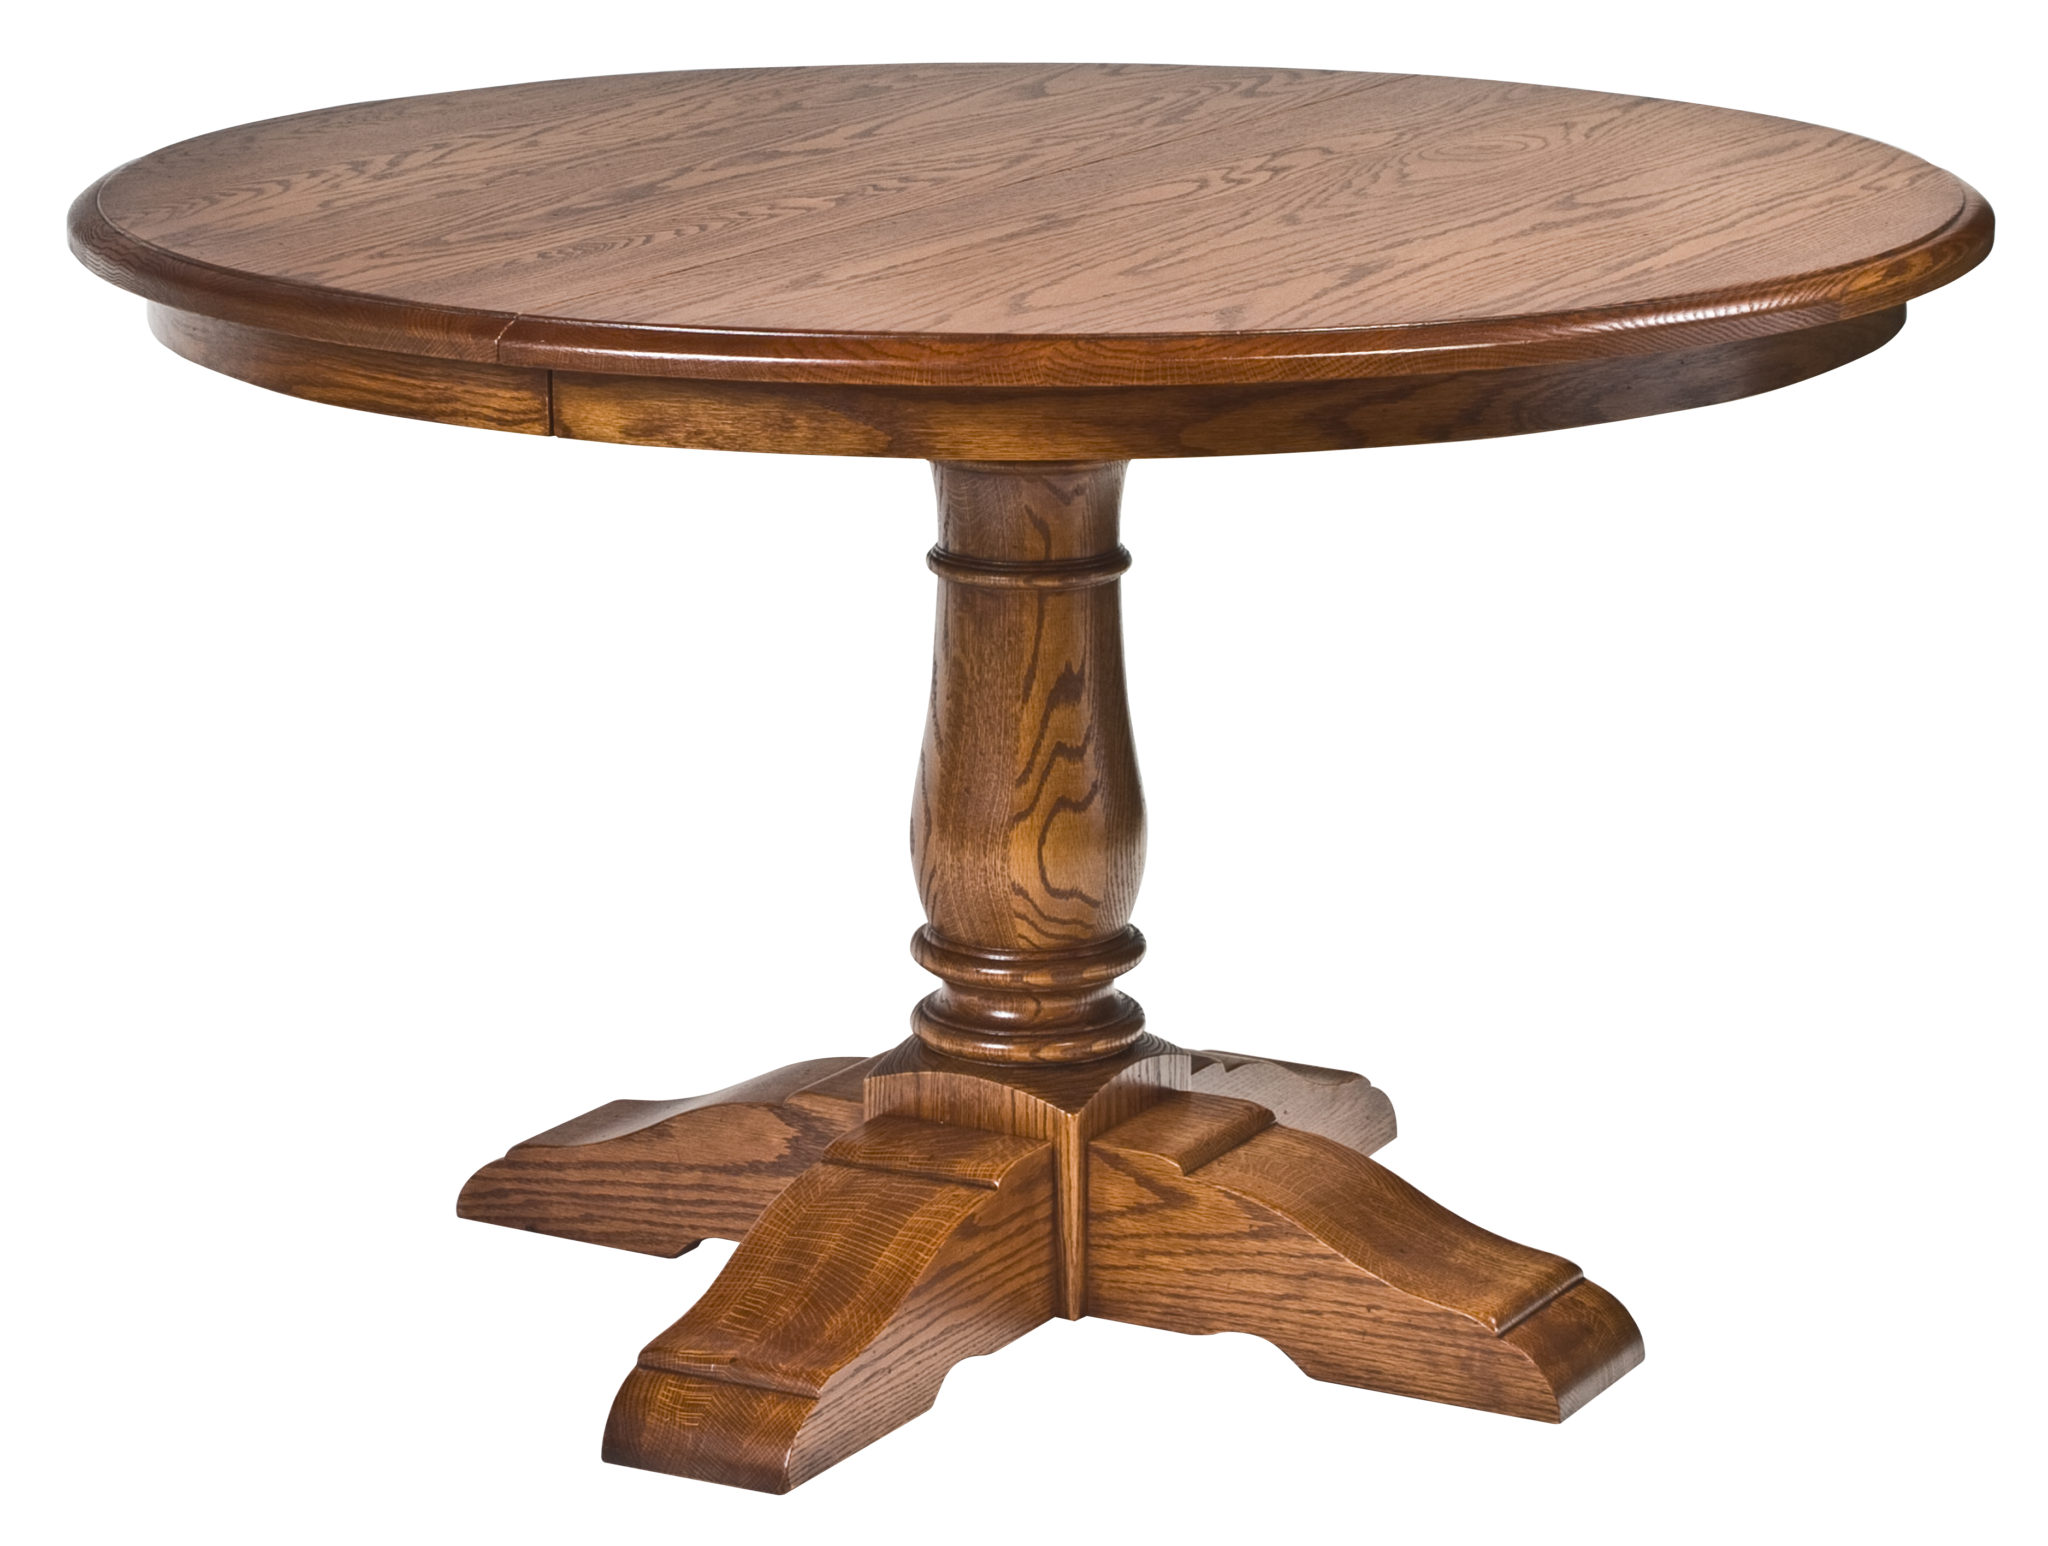 Barnaby Pedestal Table Image